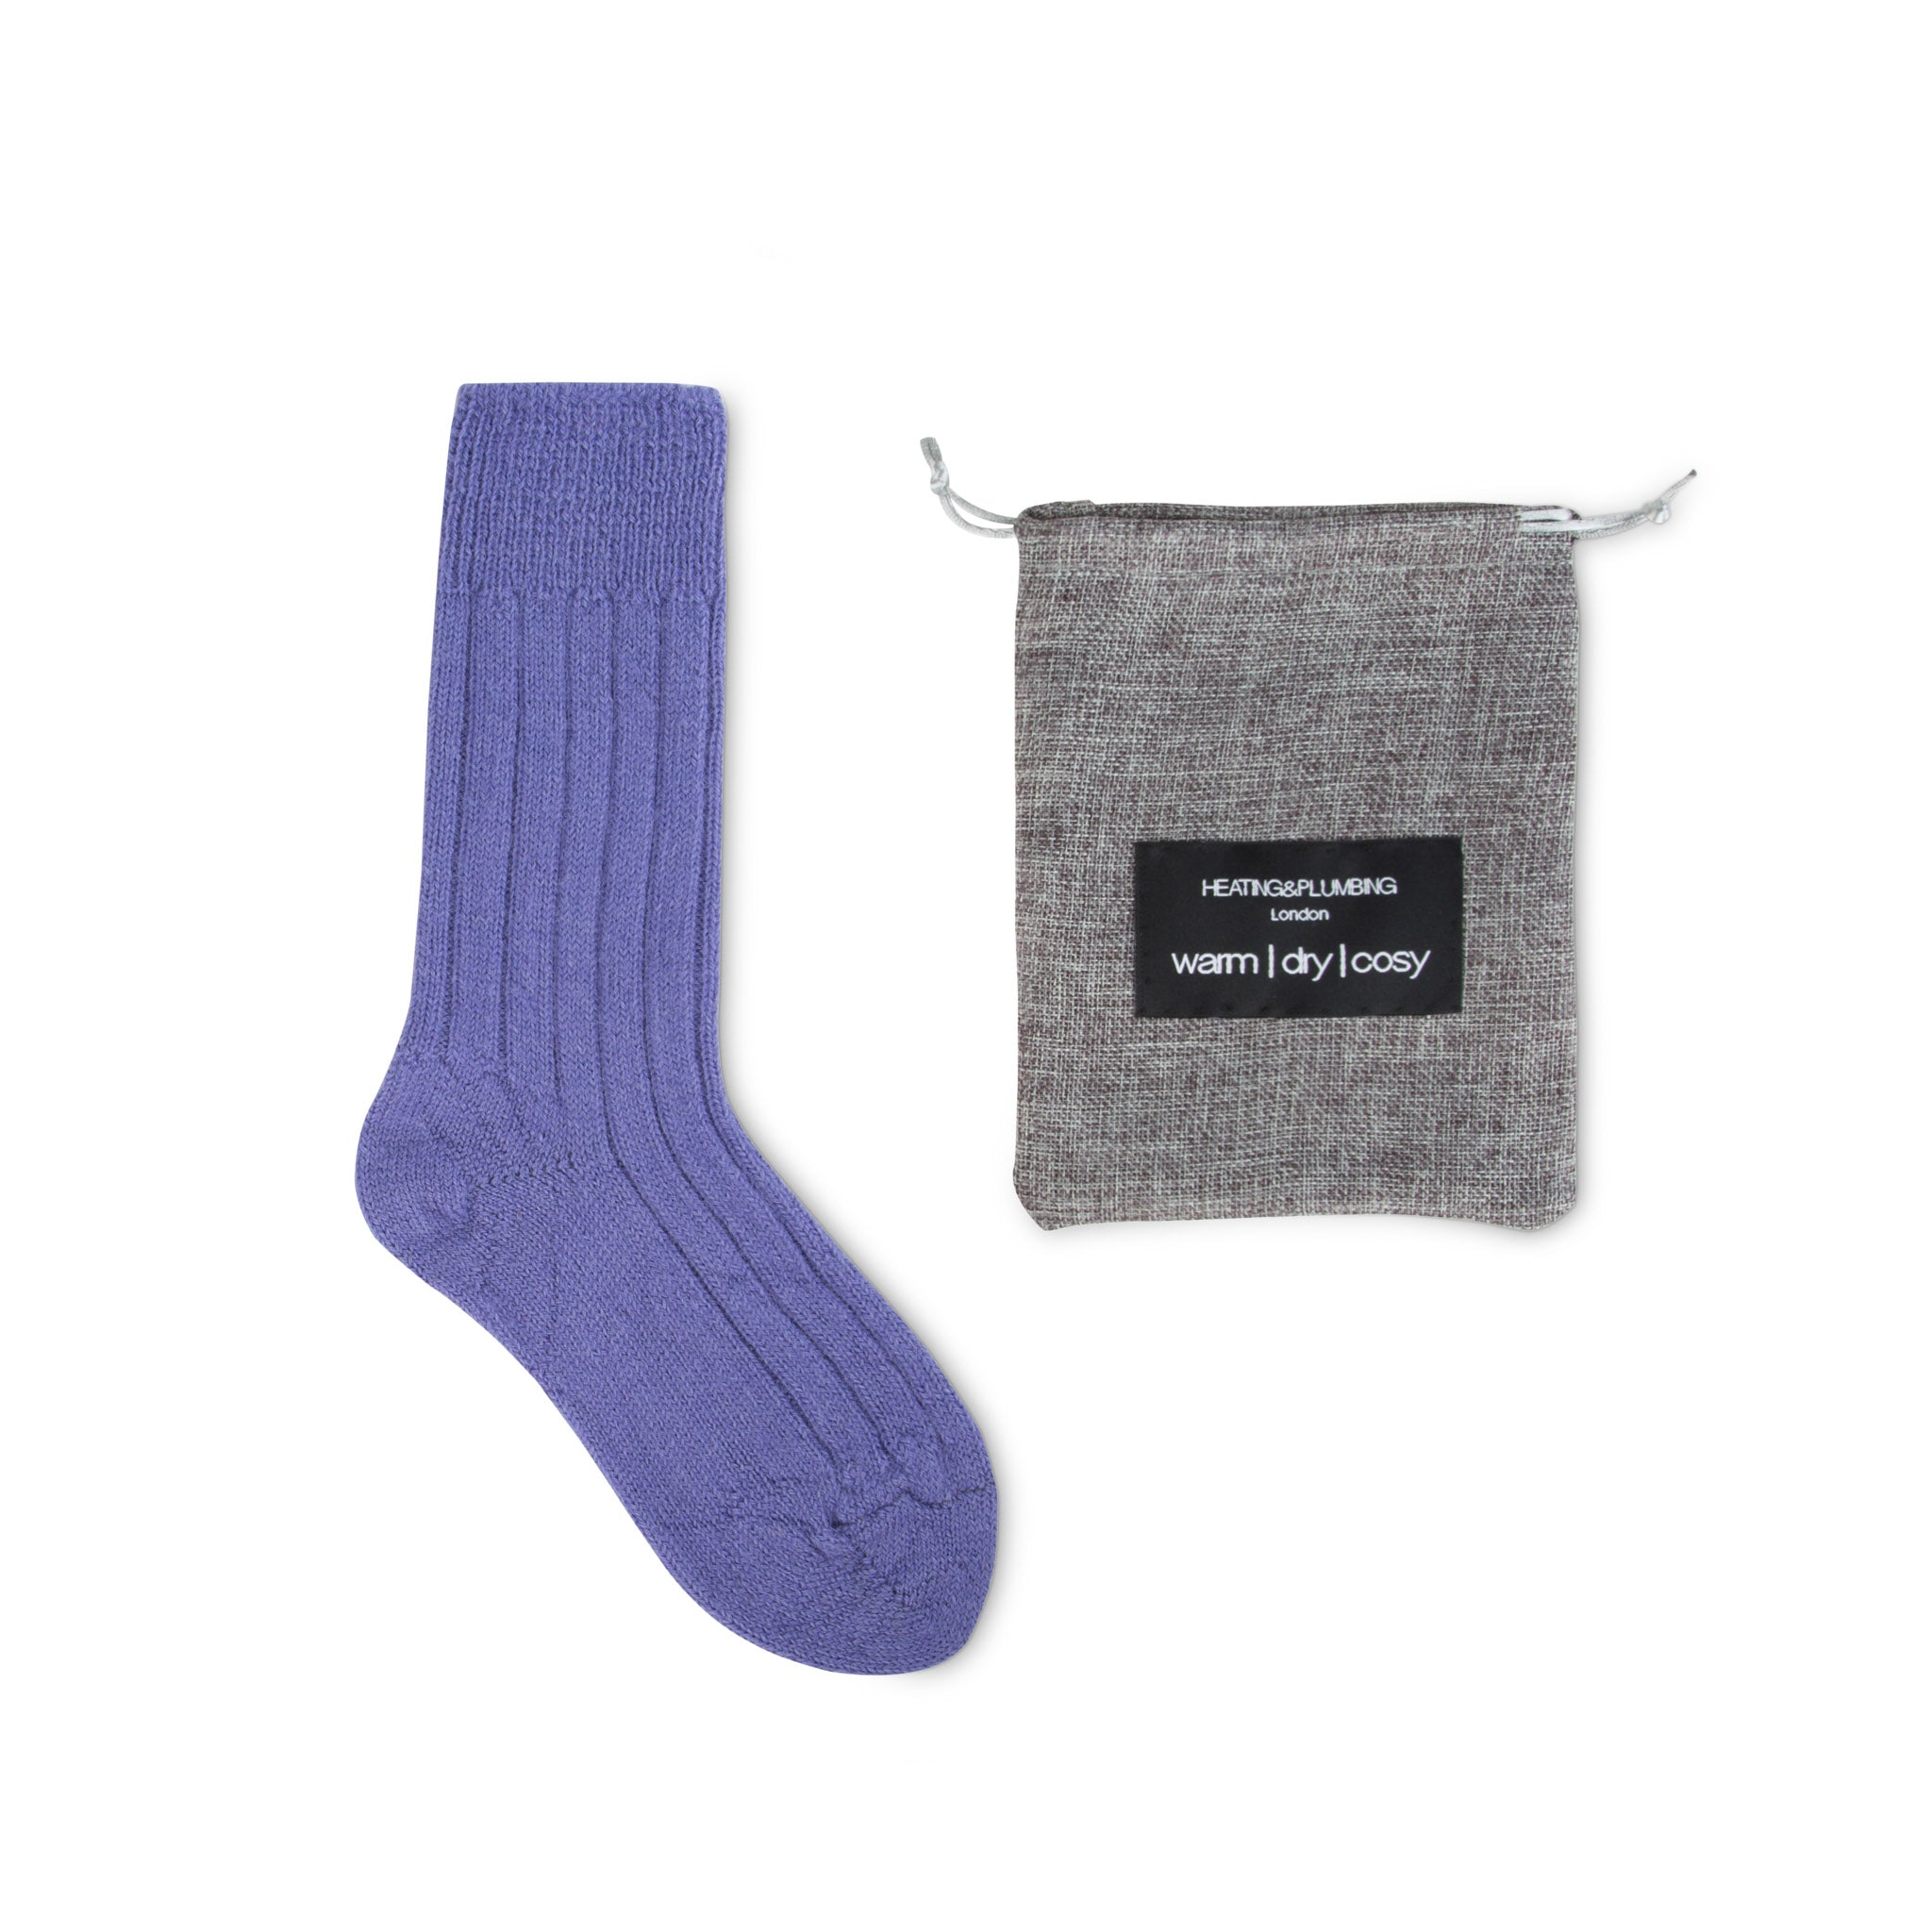 Luxury lounge socks in British alpaca - Lilac | Chaussettes Lounge en alpaga - Lilas